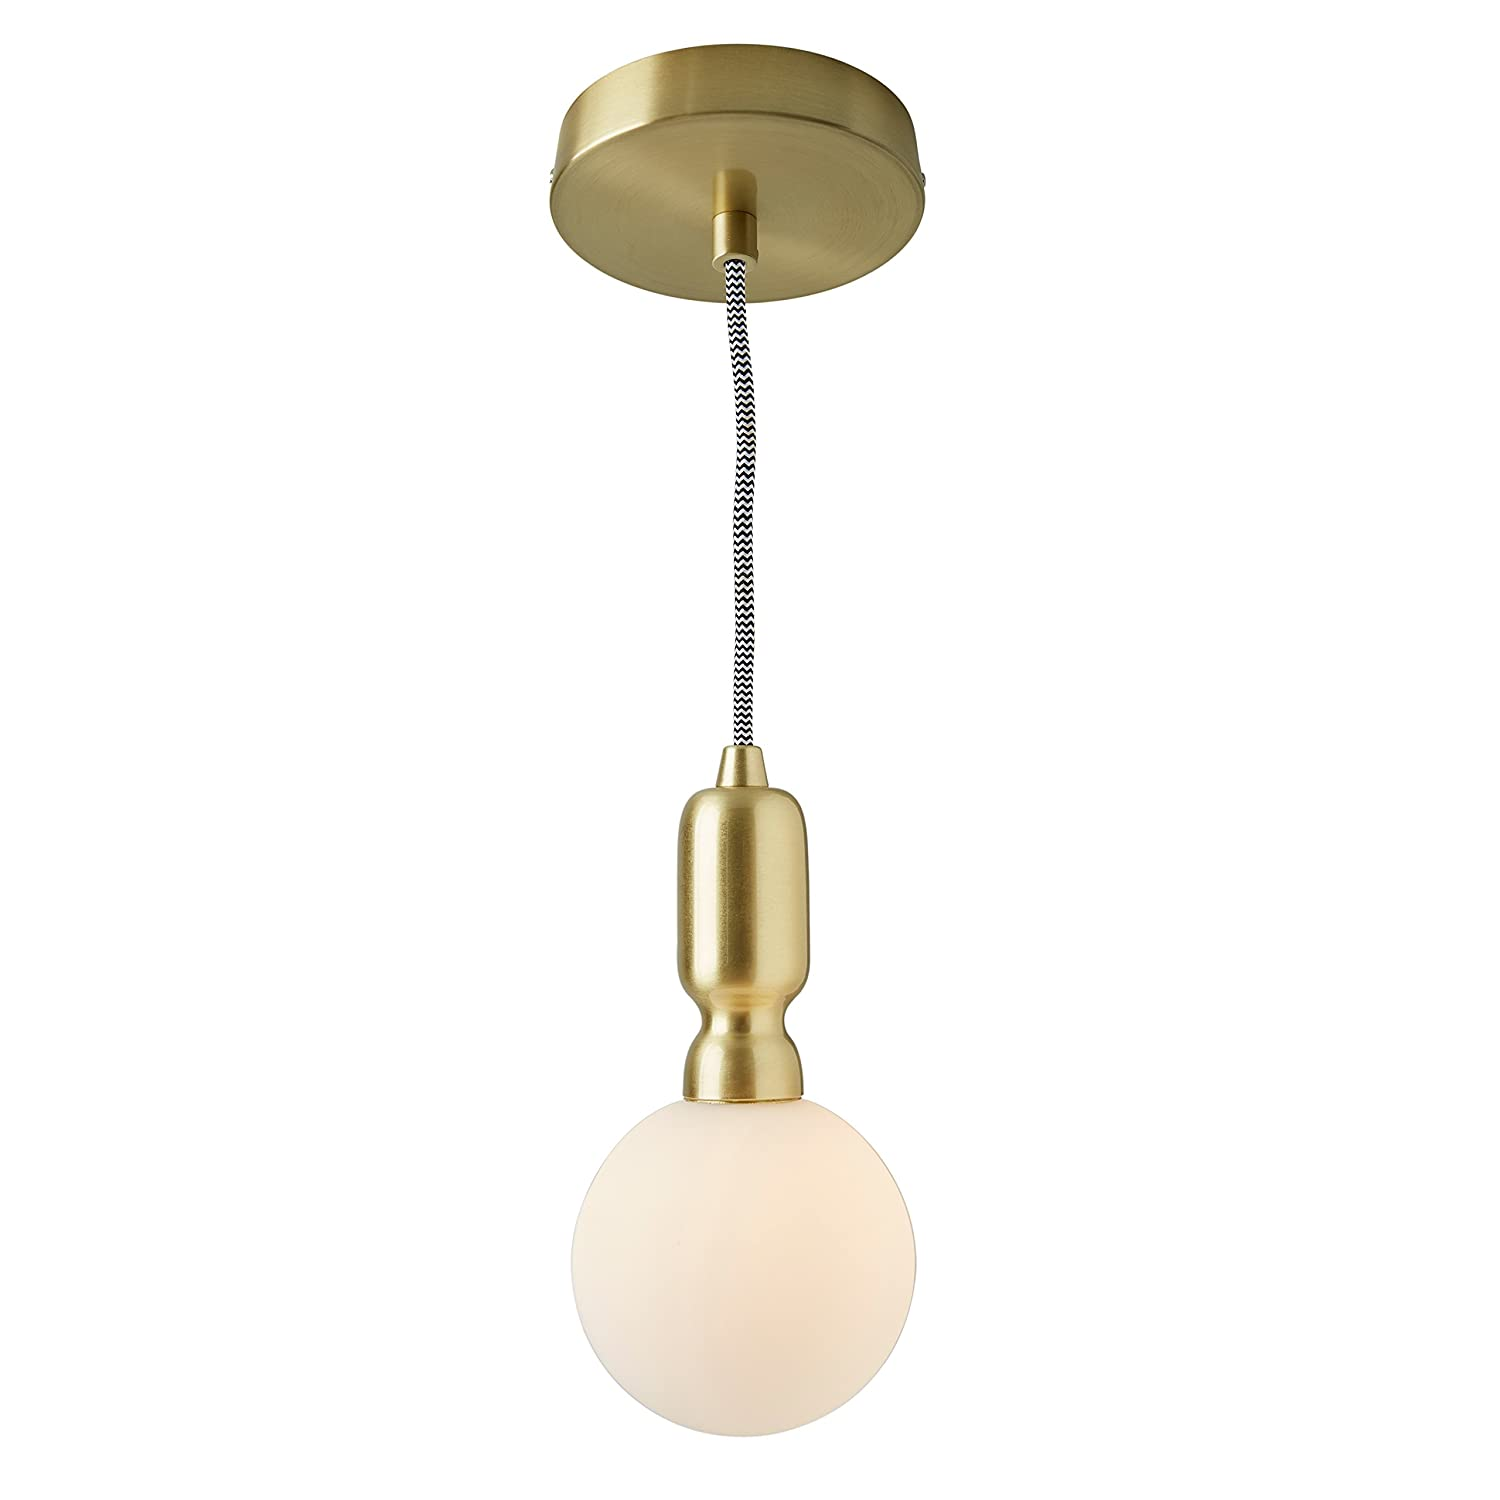 Rivet Diana Modern Globe Pendant With Bulb, 80 H, White and Gold